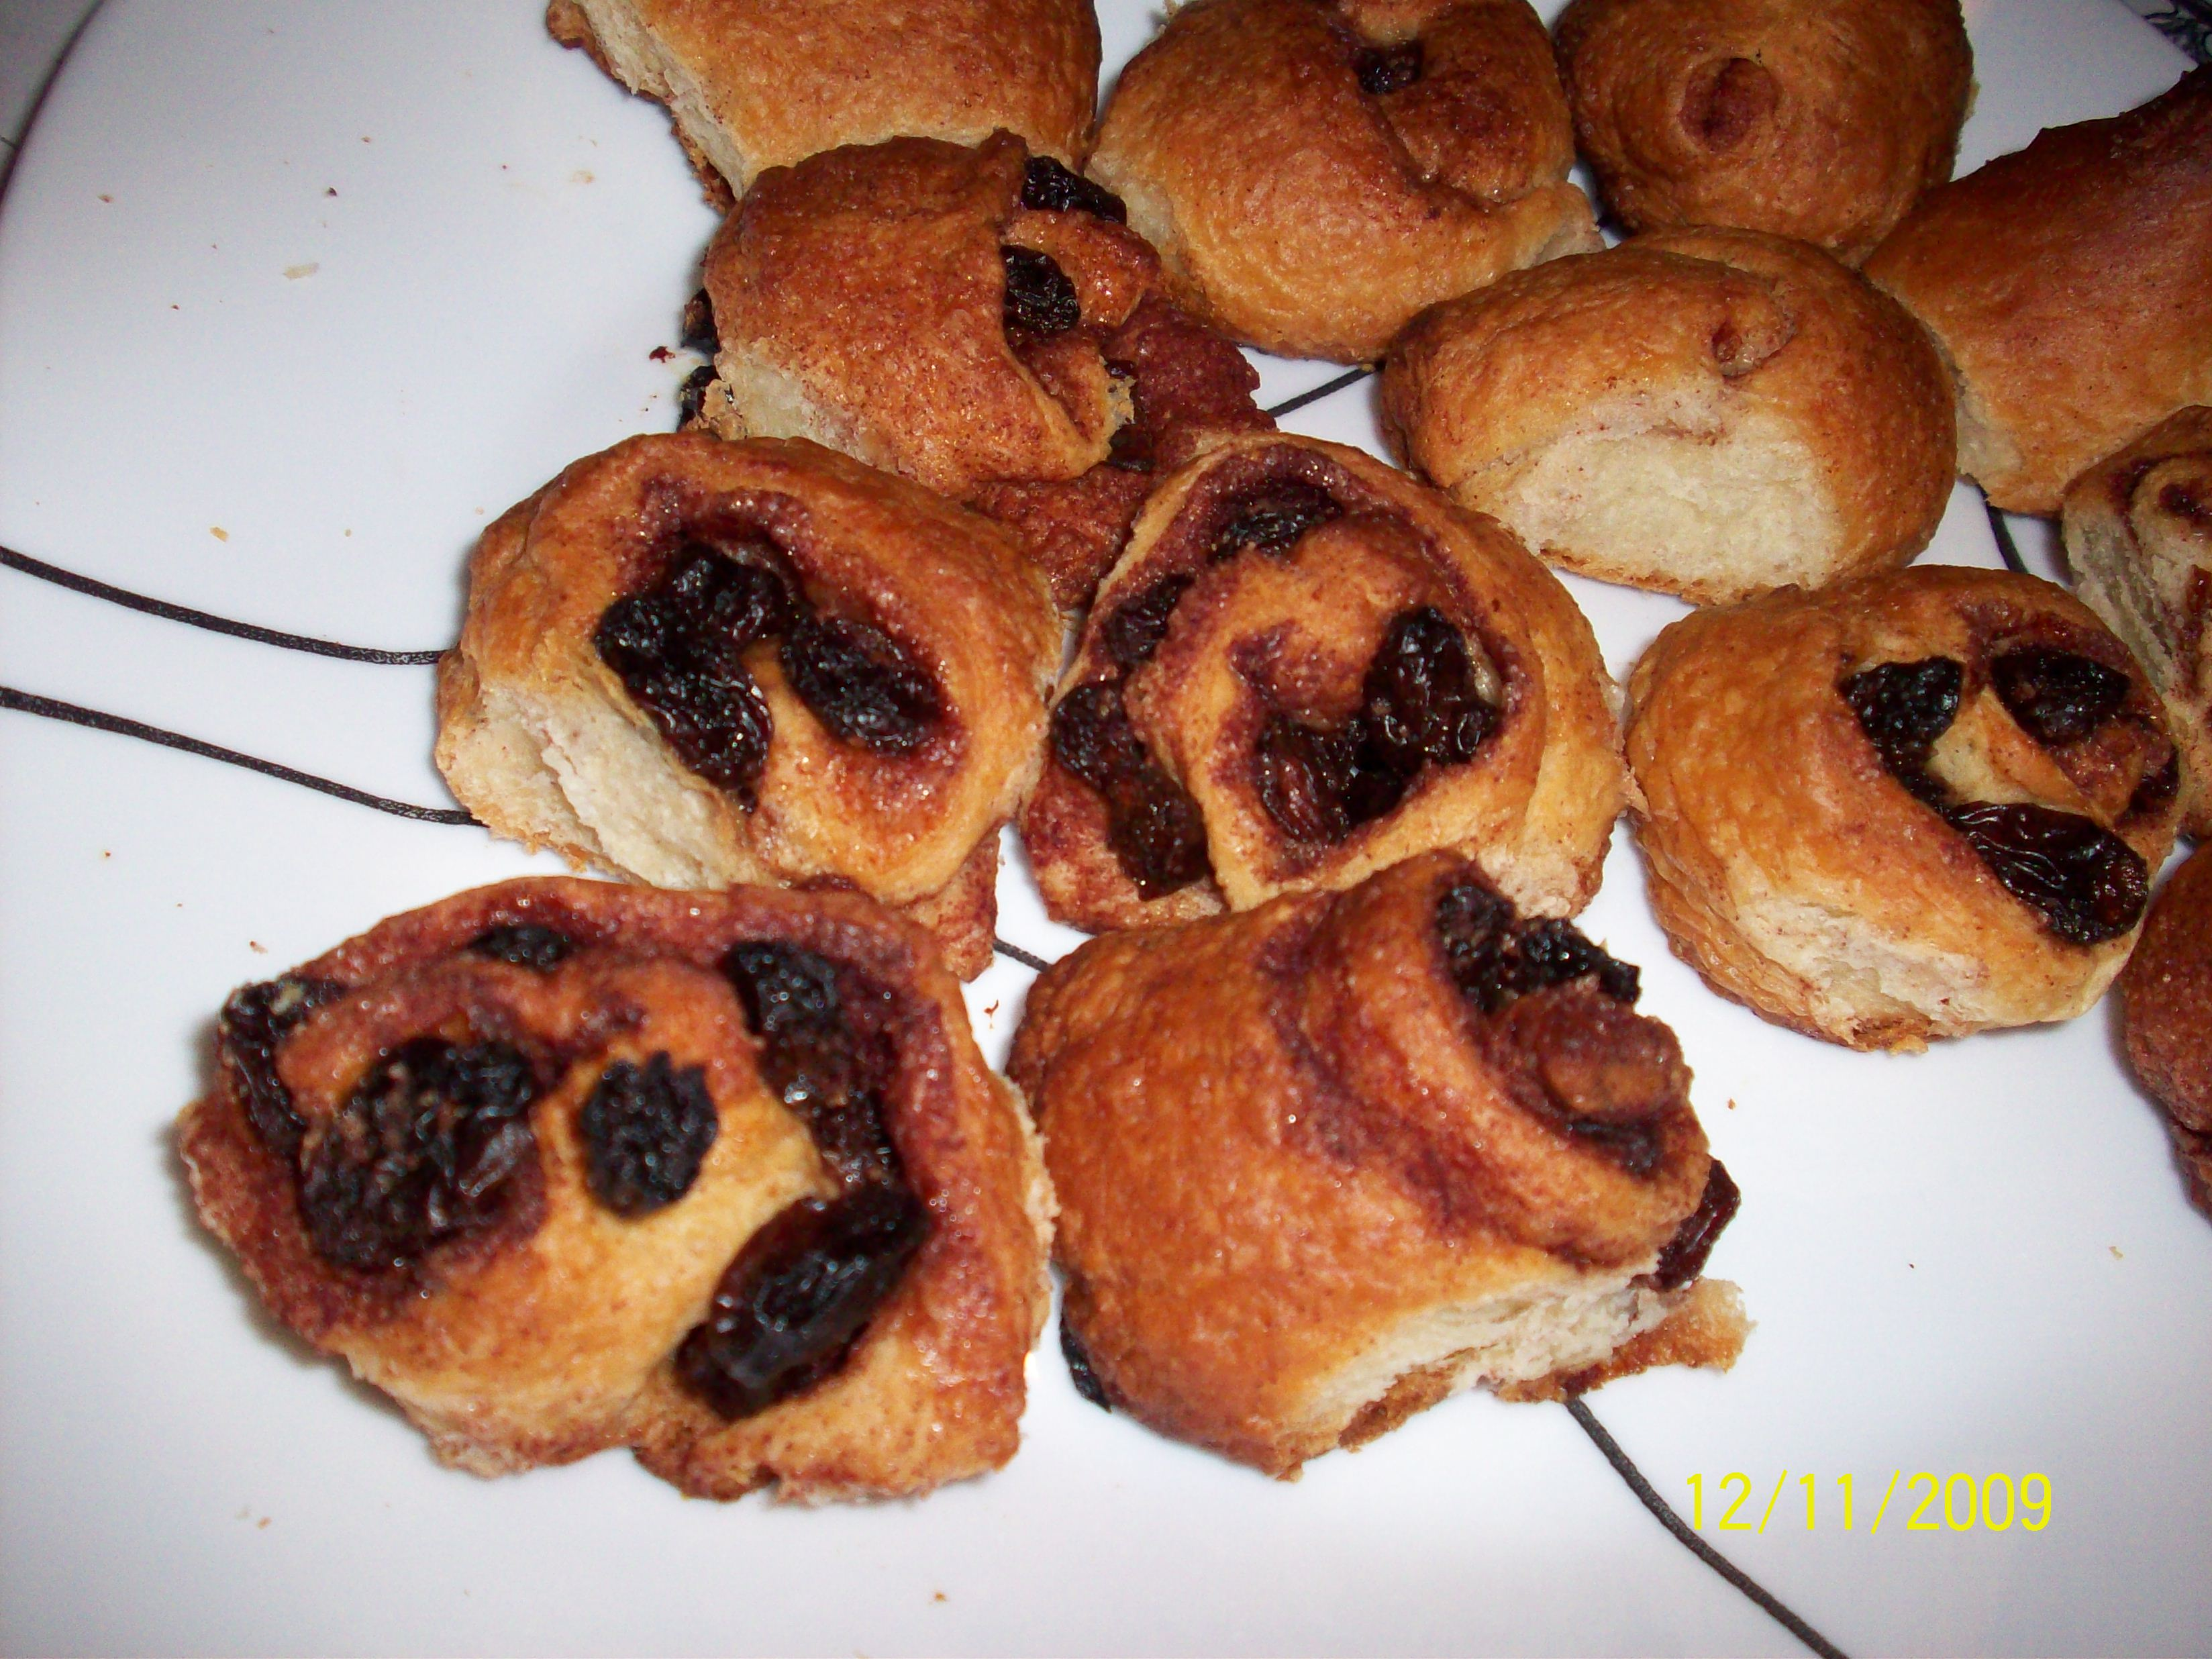 http://foodloader.net/cutie_2009-11-12_Mini_Cinnamon_Crescents2.jpg